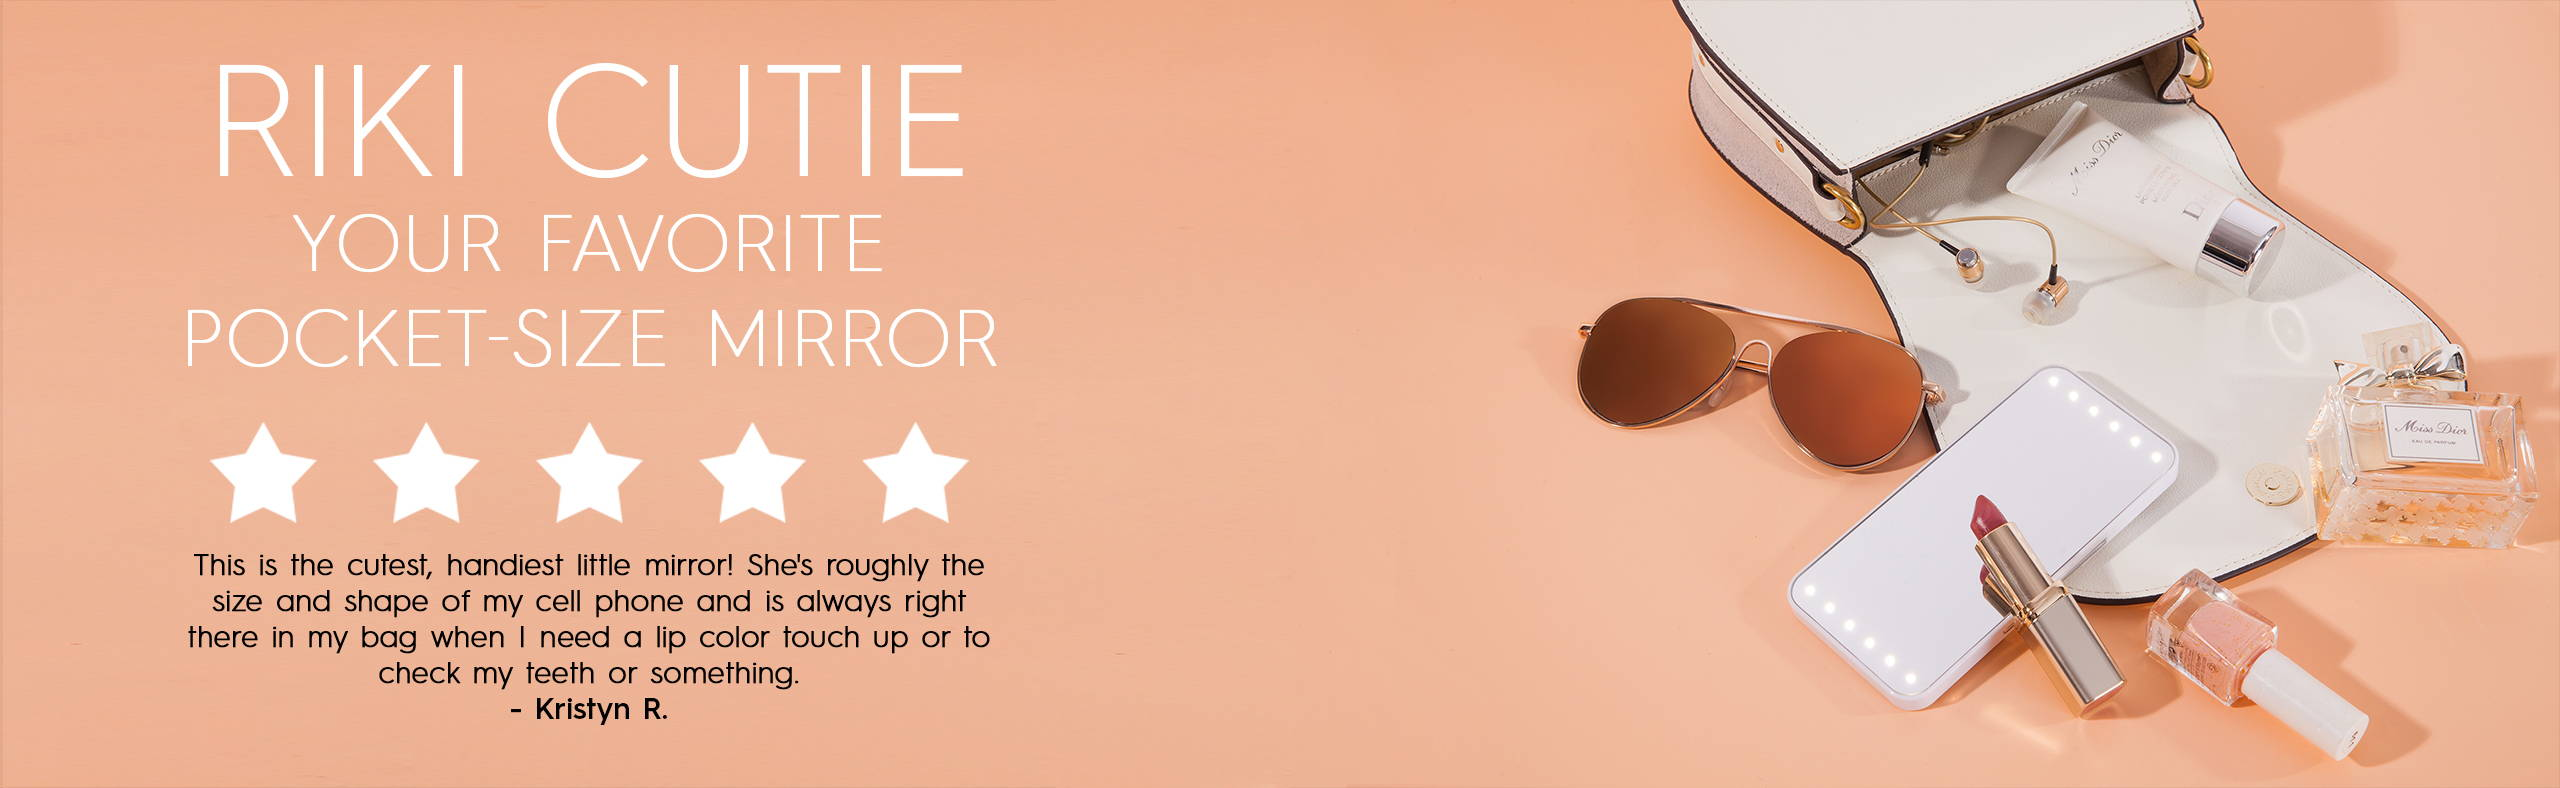 RIKI CUTIE is the best mini makeup mirror with lights at pocket-size